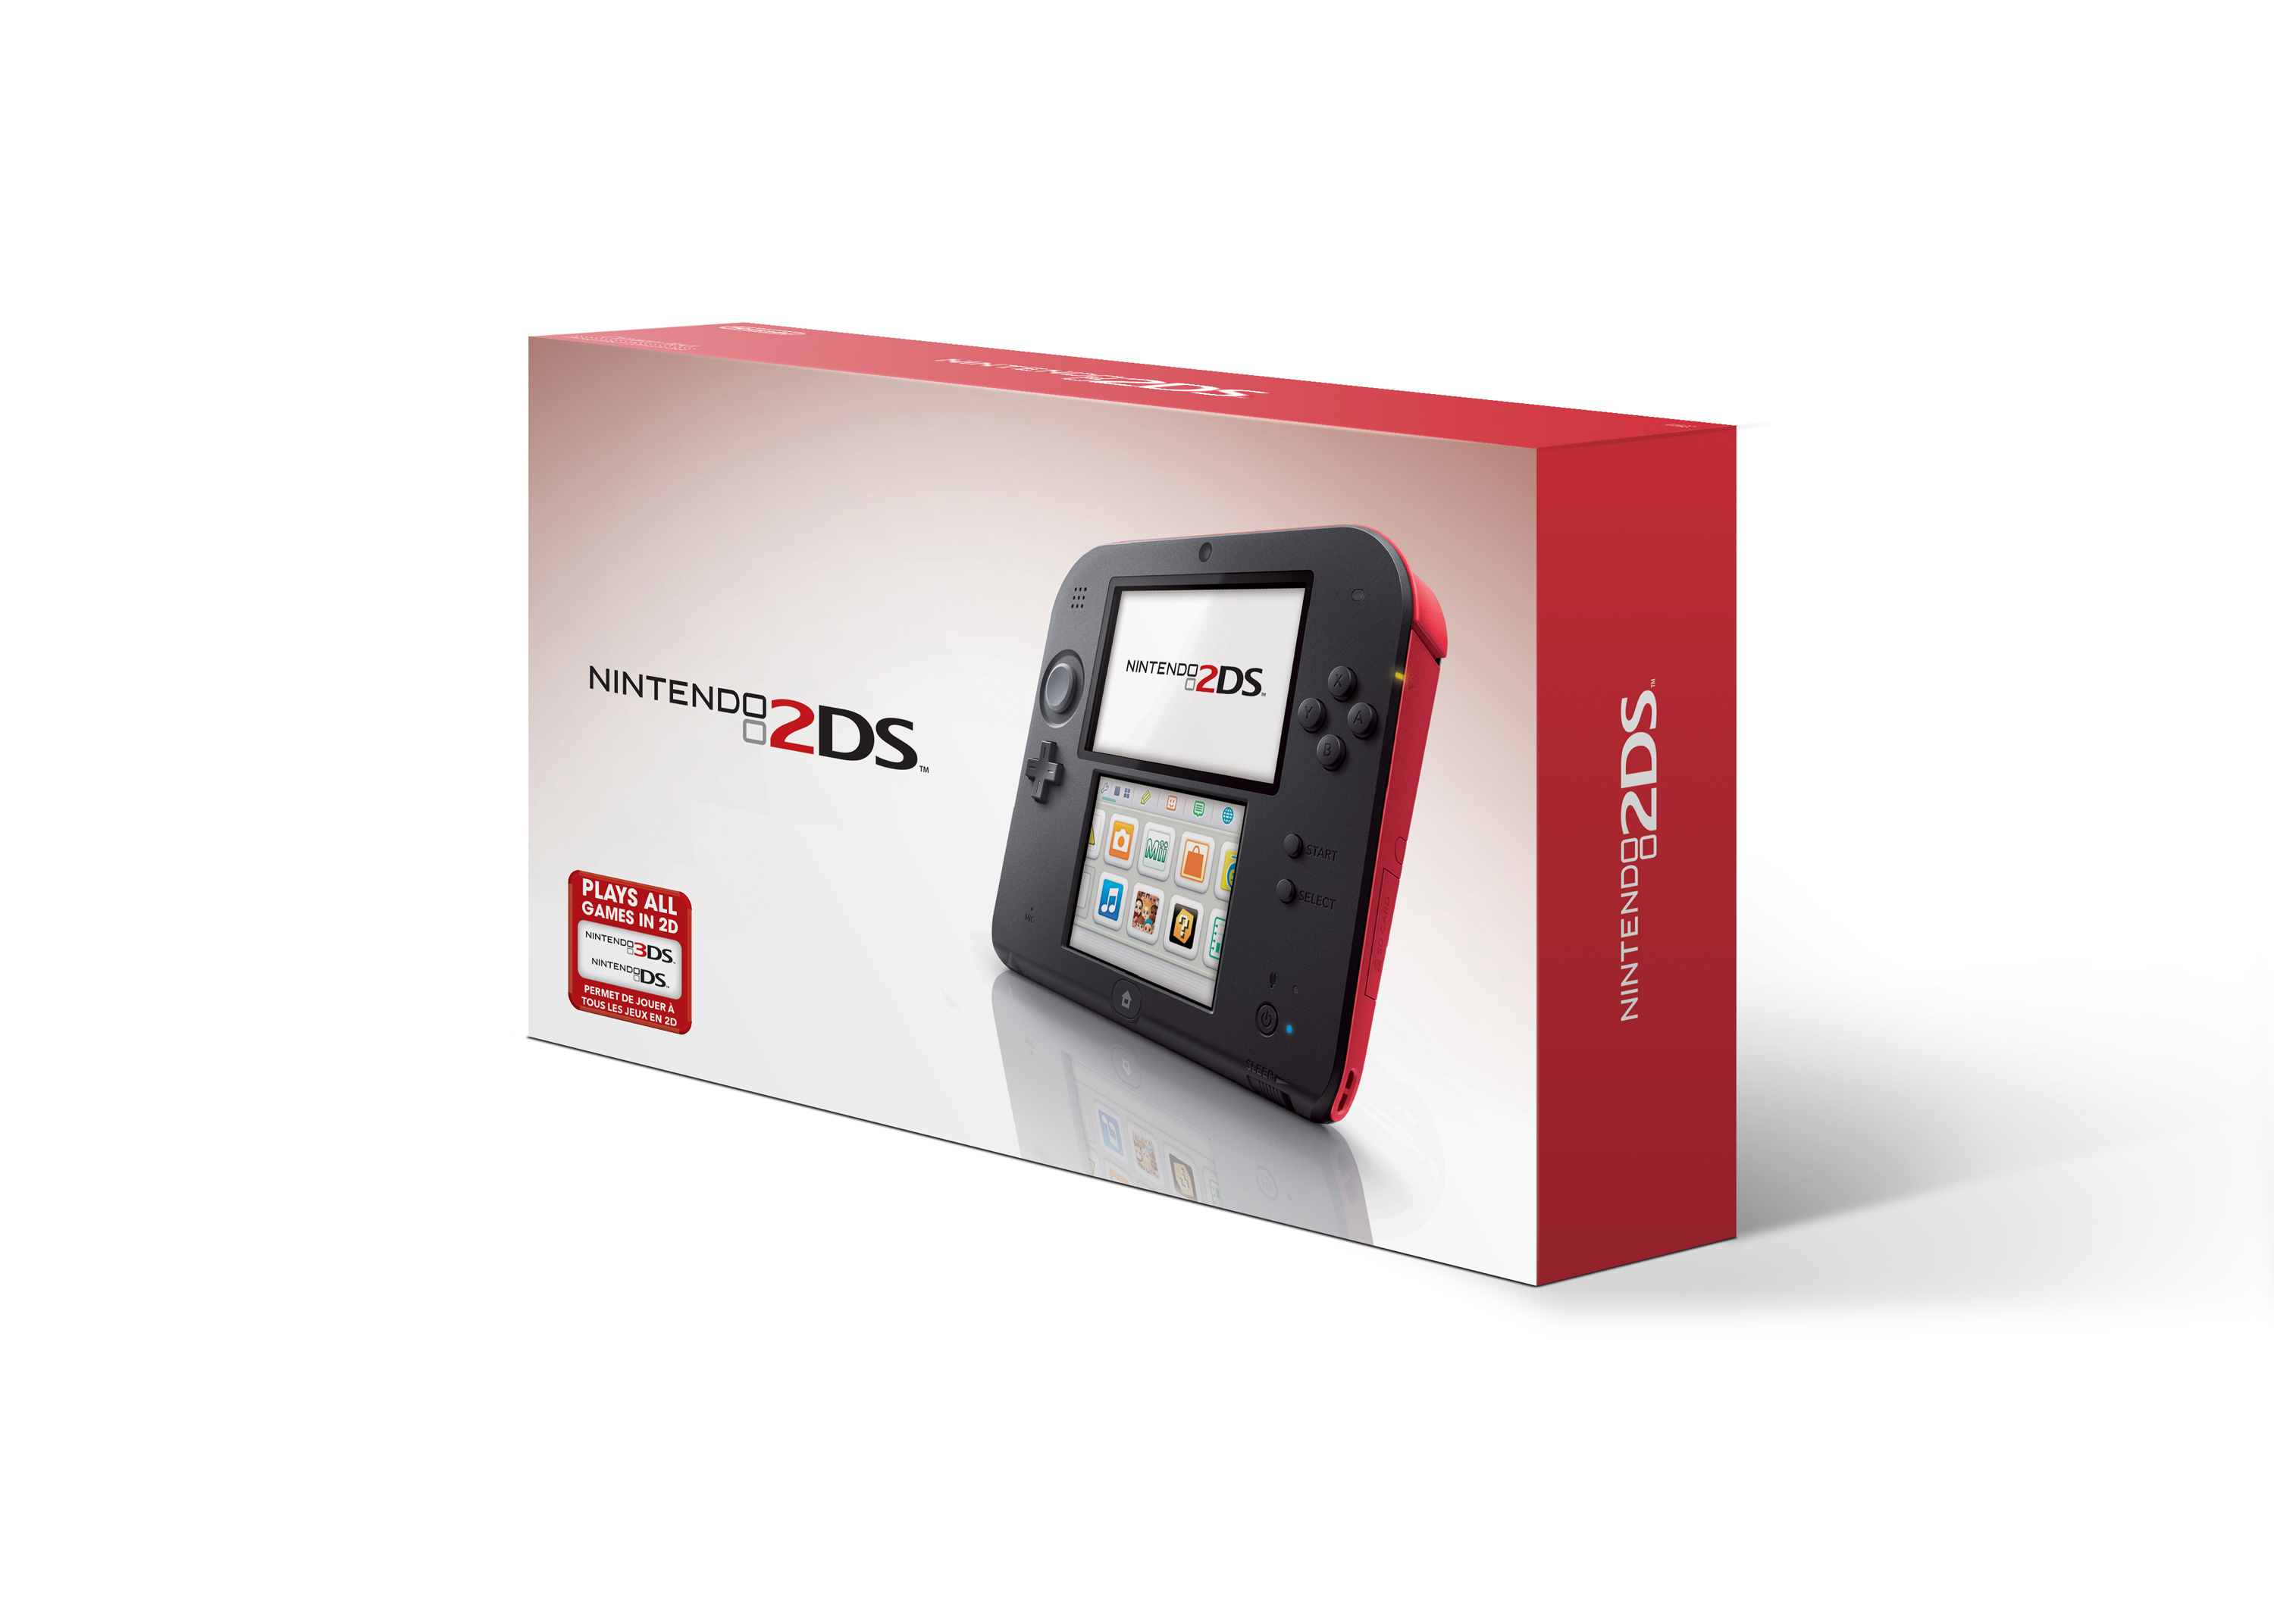 2ds-prodshot-red